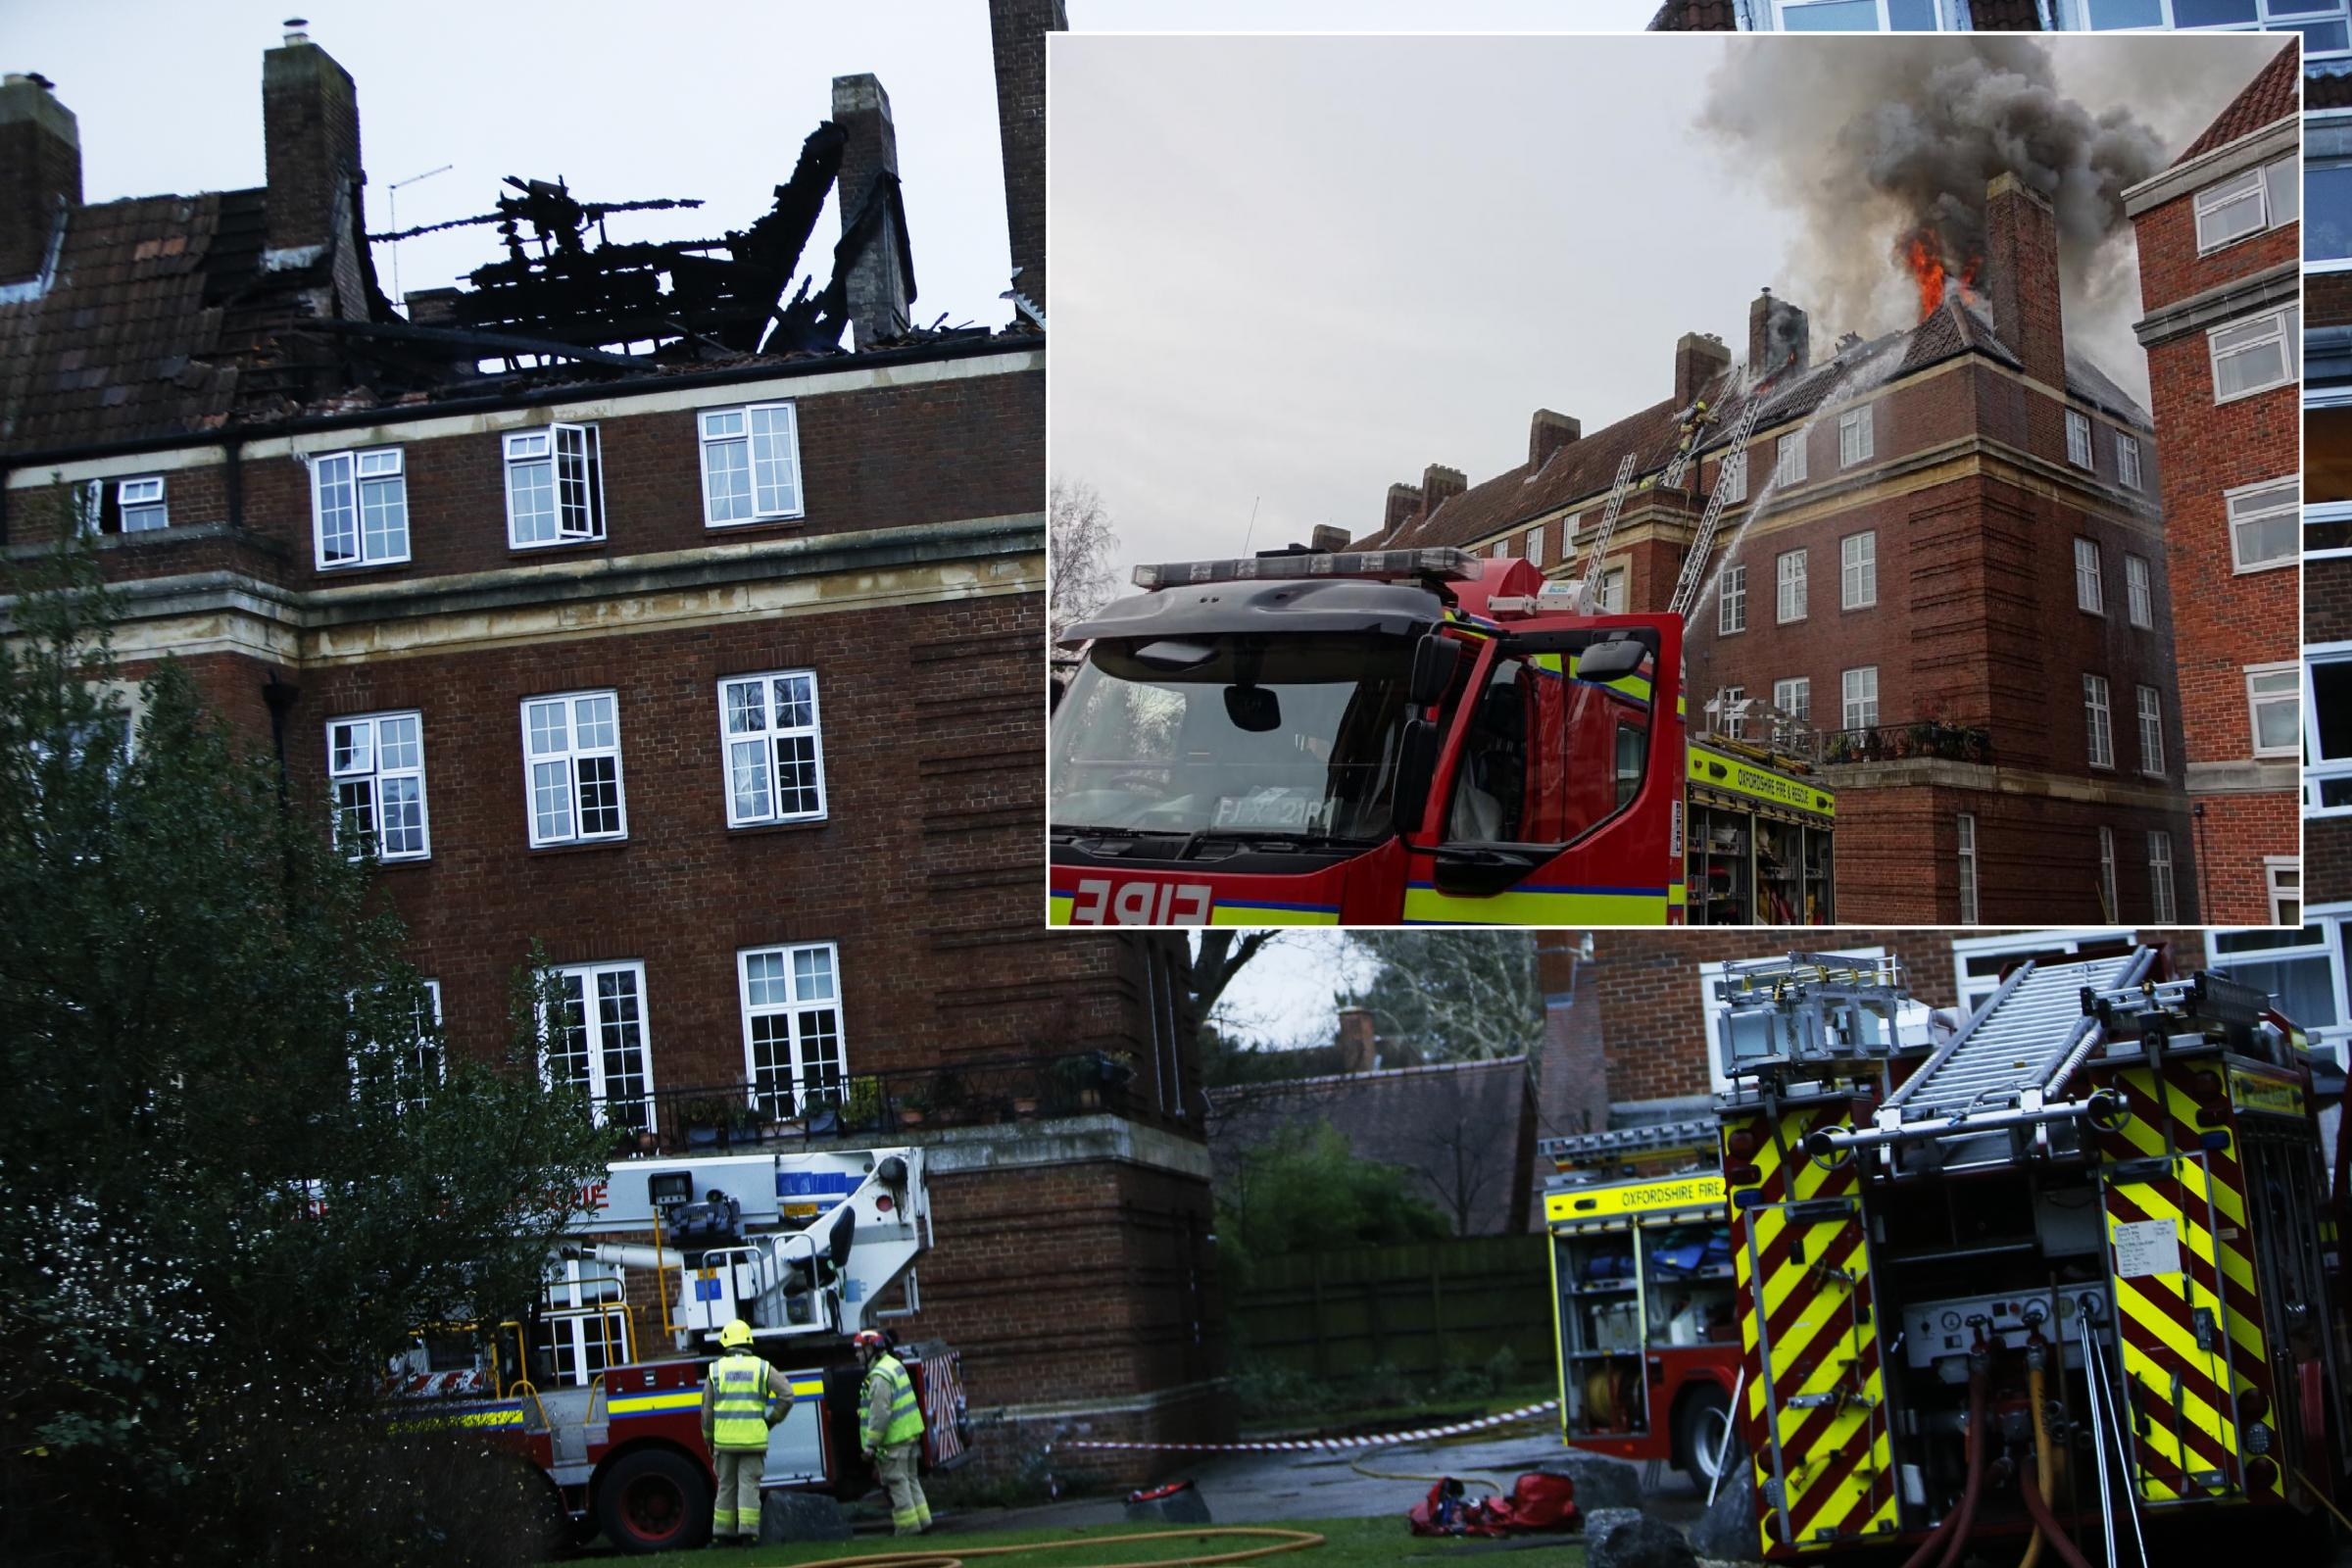 Aftermath of fire at Woodstock Close in North Oxford. Picture by Ed Nix. INSET: Fire photo by Tony Keenan